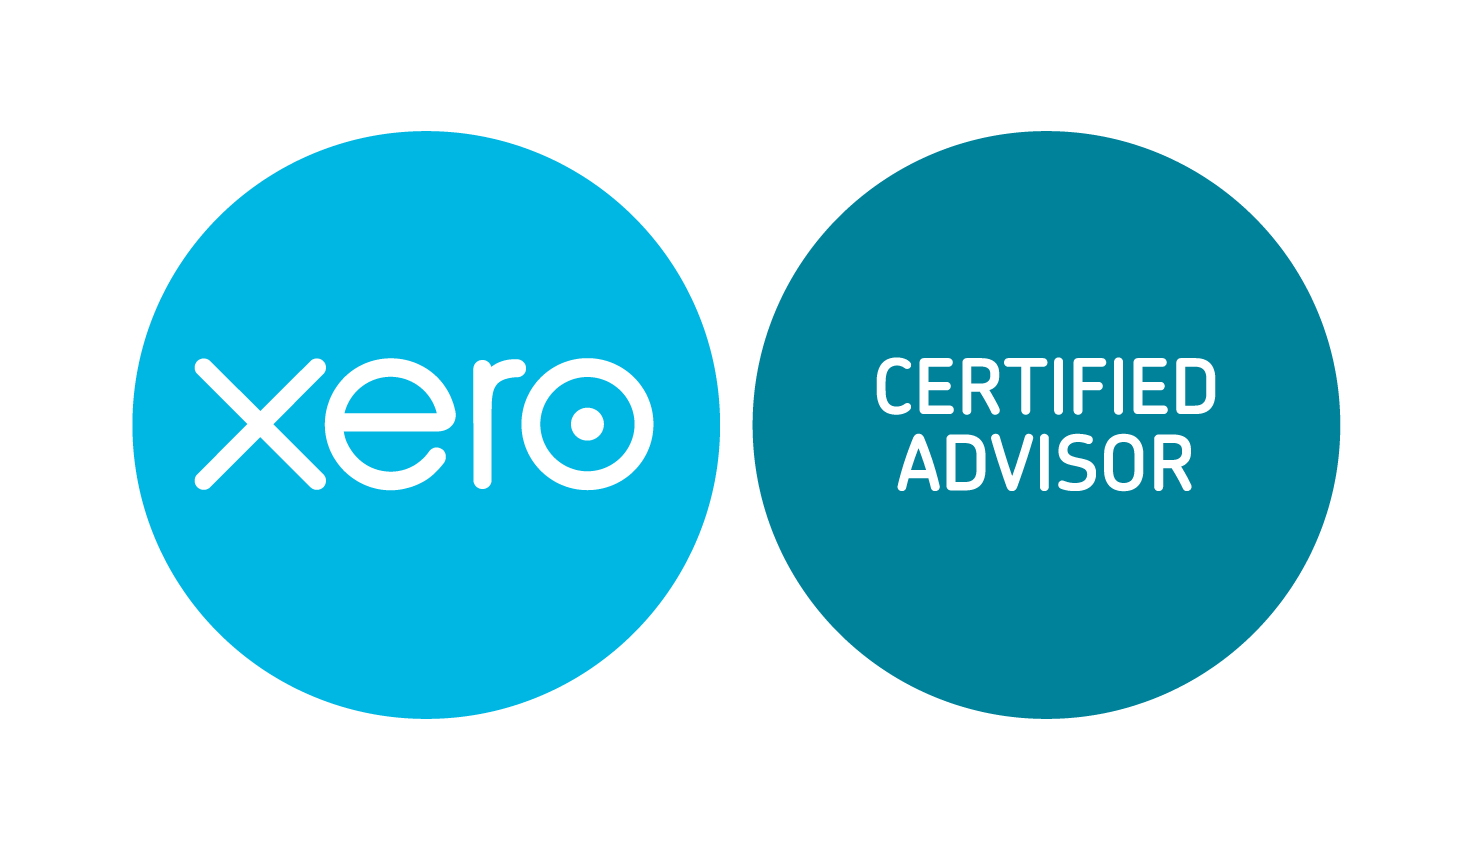 Xero - Online Cloud Based Accounting SoftwareWe're Certified - so you can rest assured that you're getting the most from your accounting software.